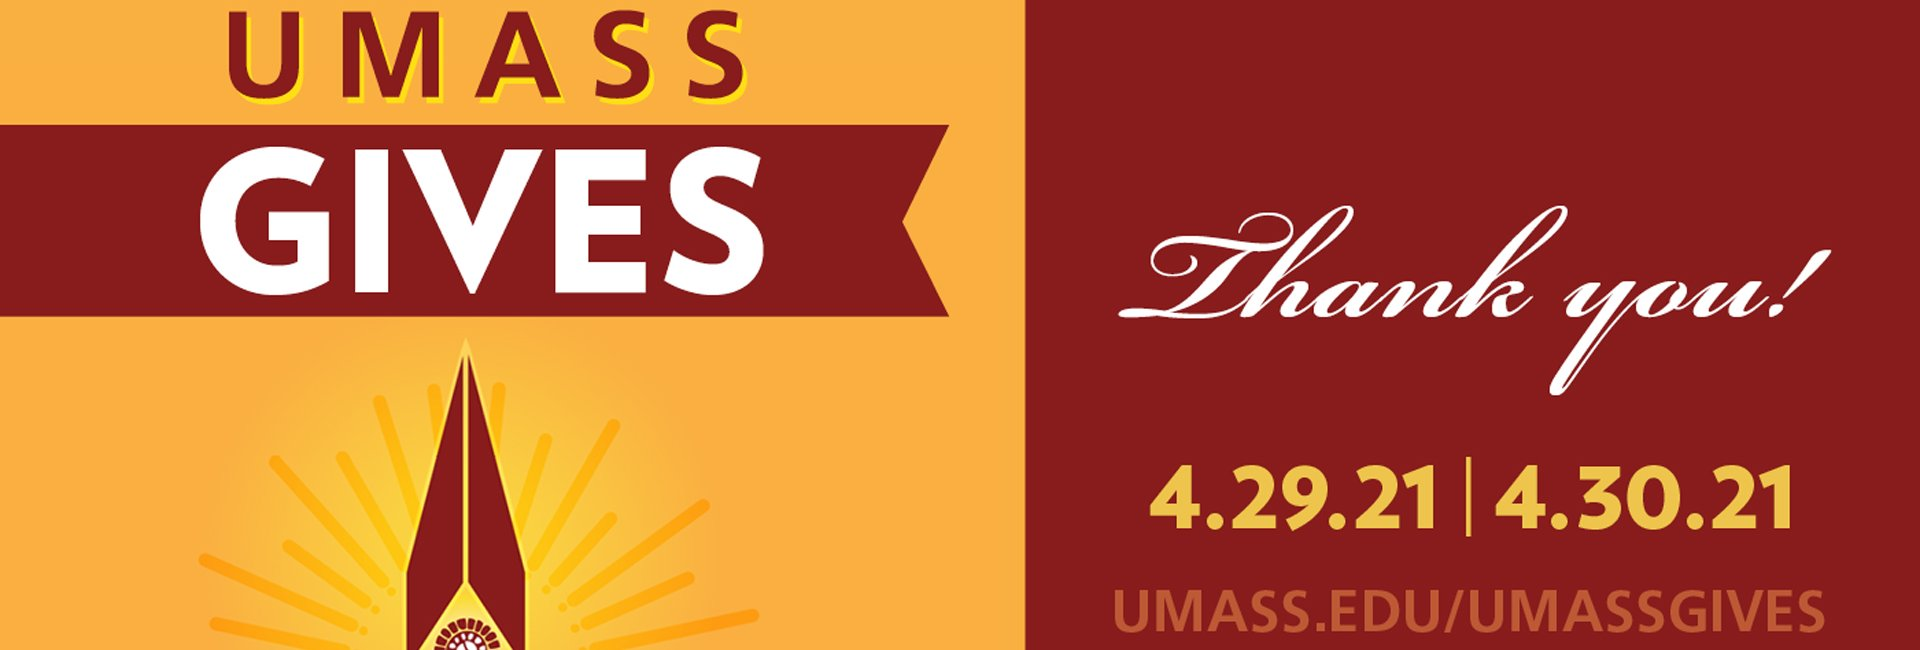 UMass Gives Thank you!